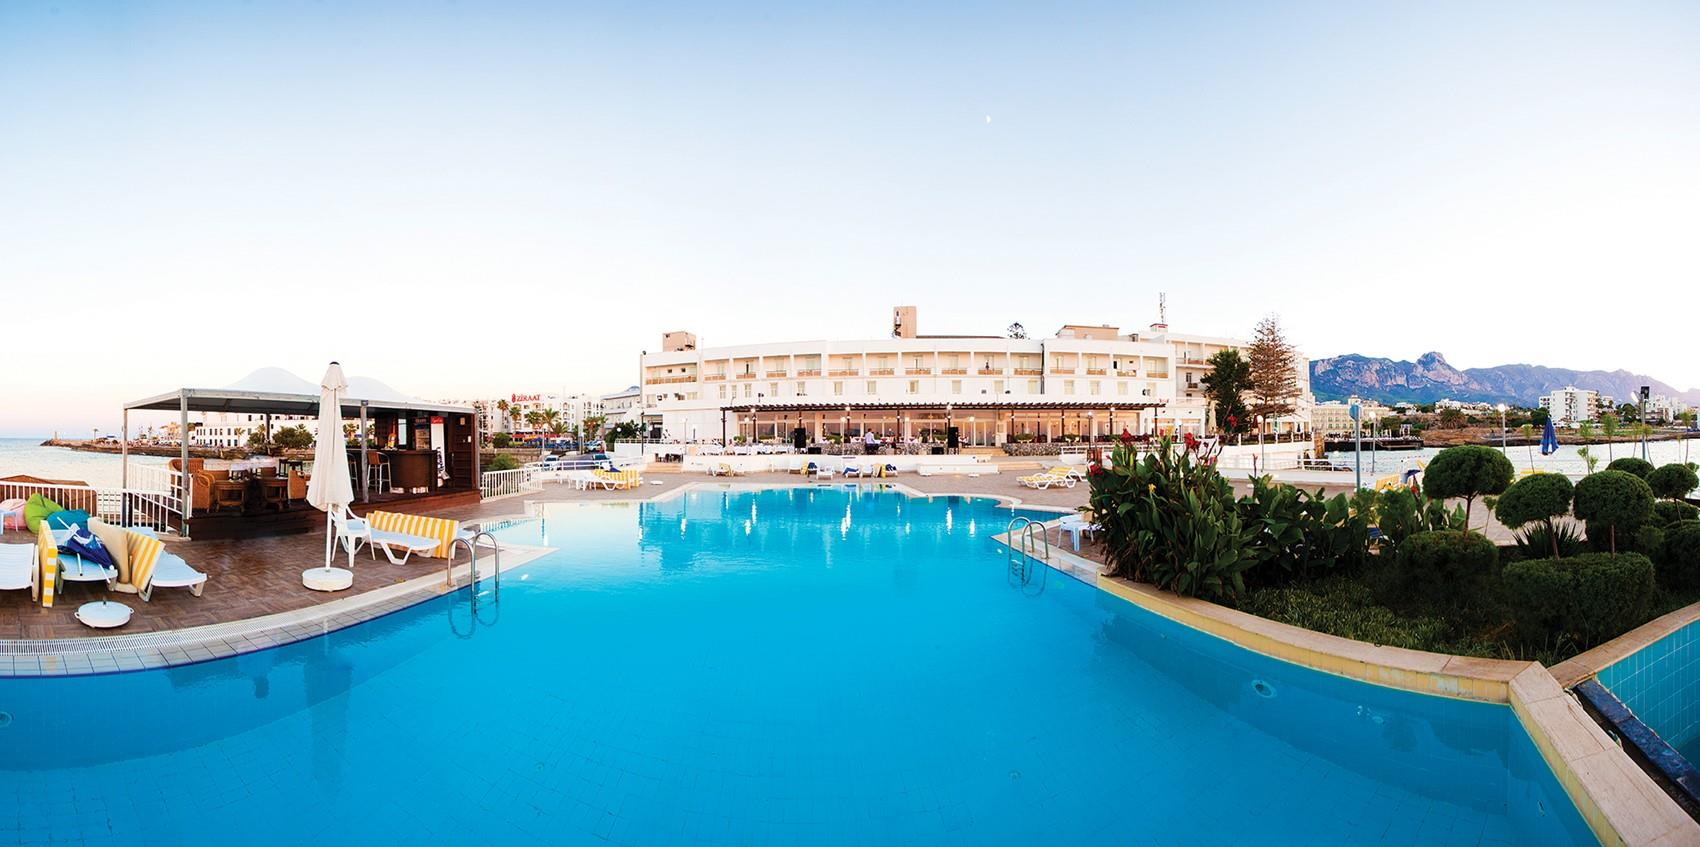 dome-hotel-and-casino-girne-genel-005